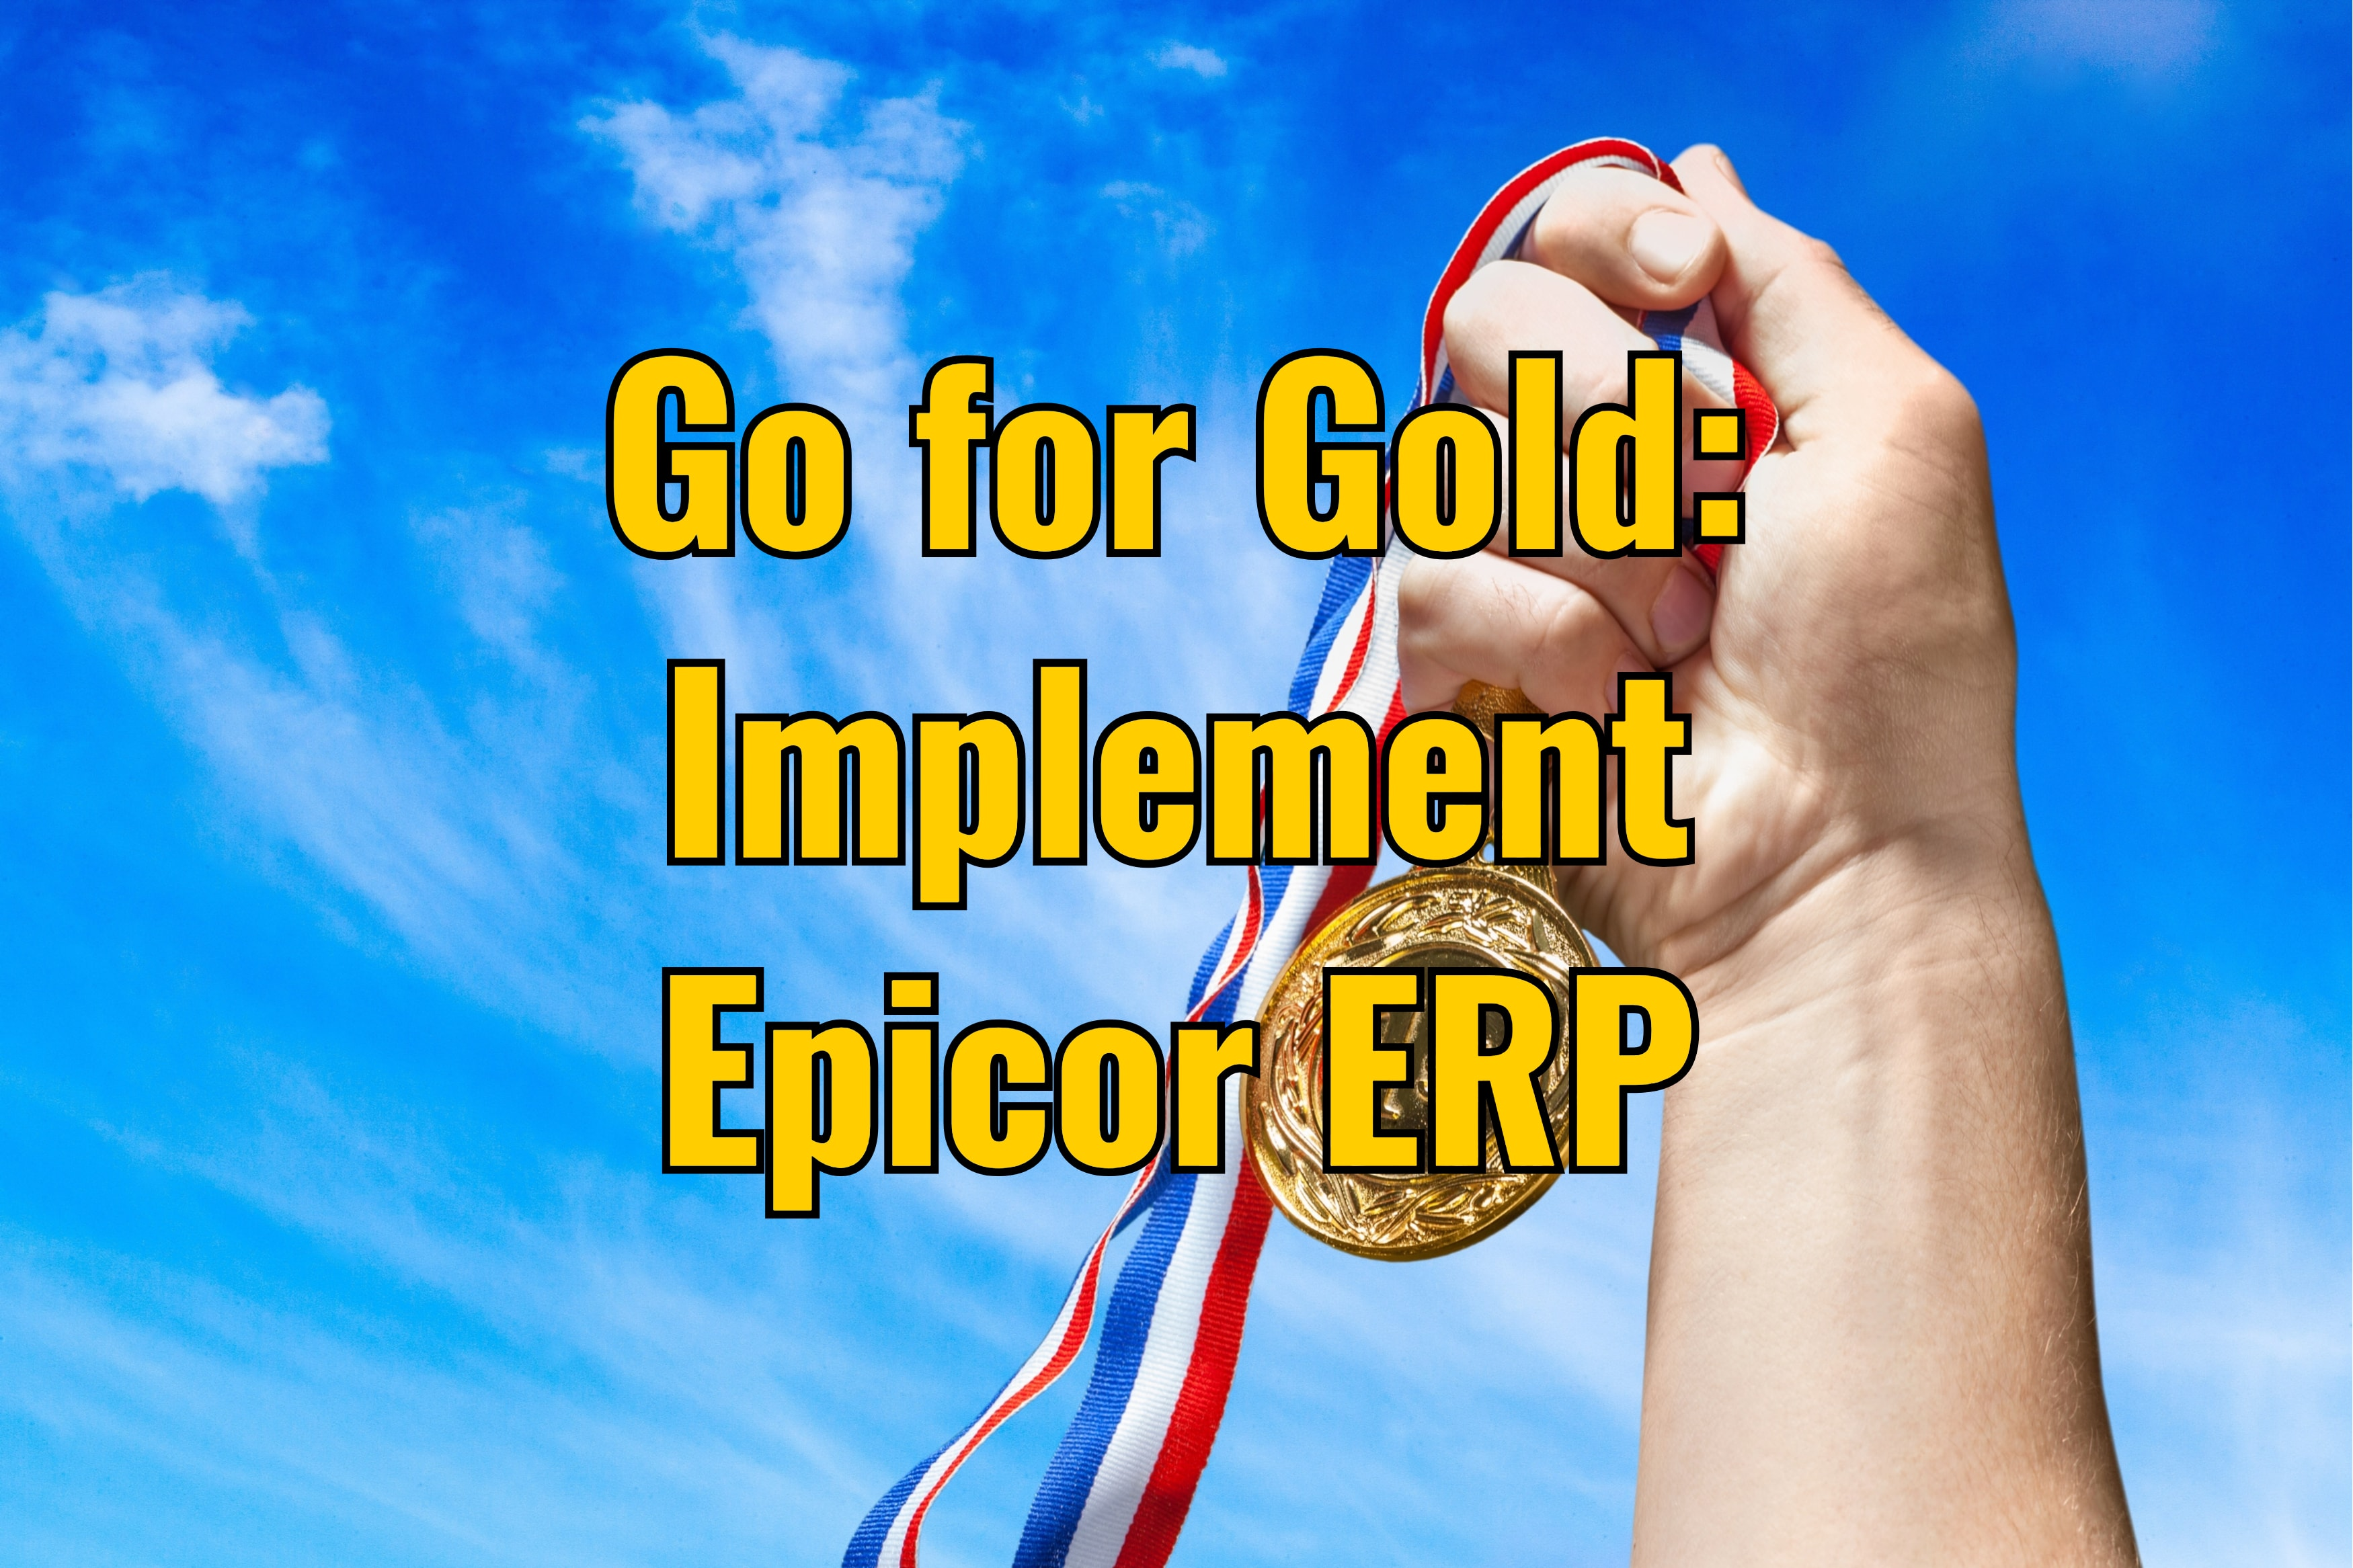 Go for Gold: Implement Epicor ERP